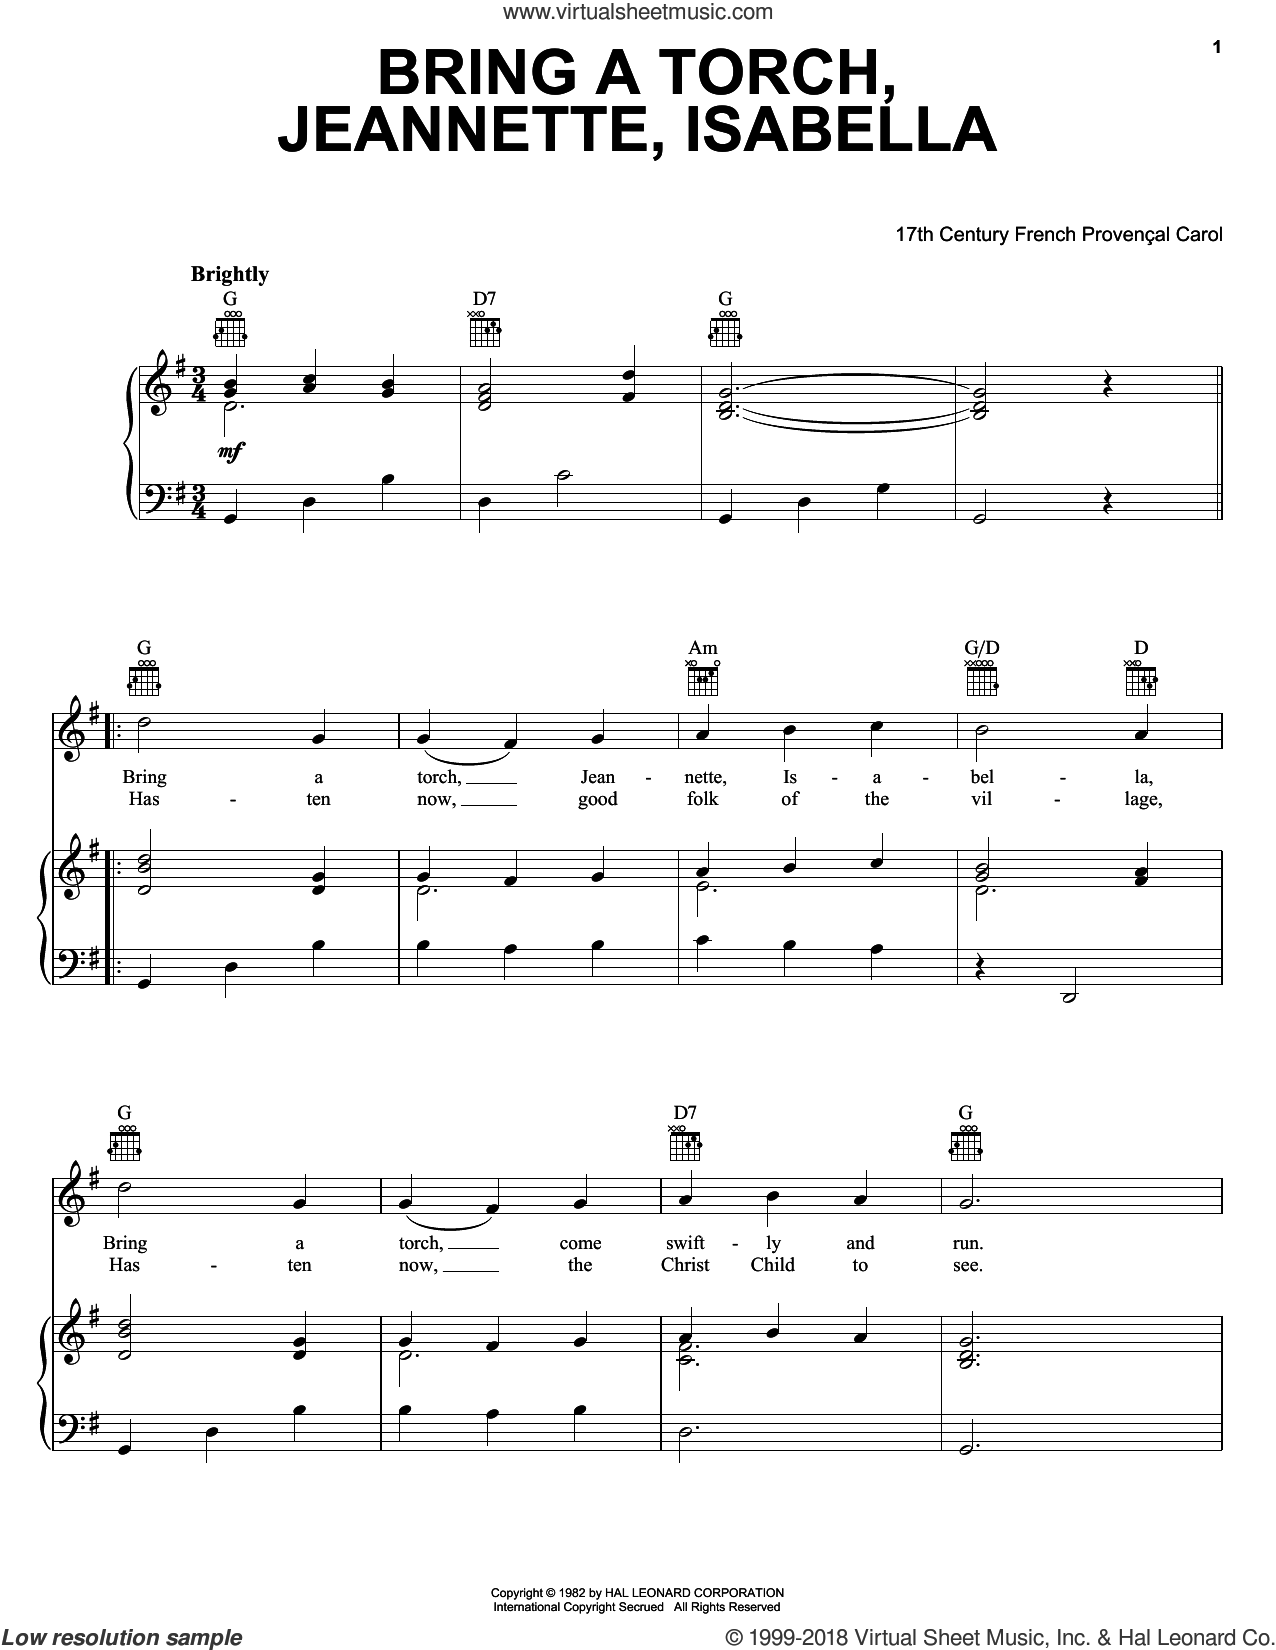 Bring A Torch, Jeannette Isabella sheet music for voice, piano or guitar by Anonymous